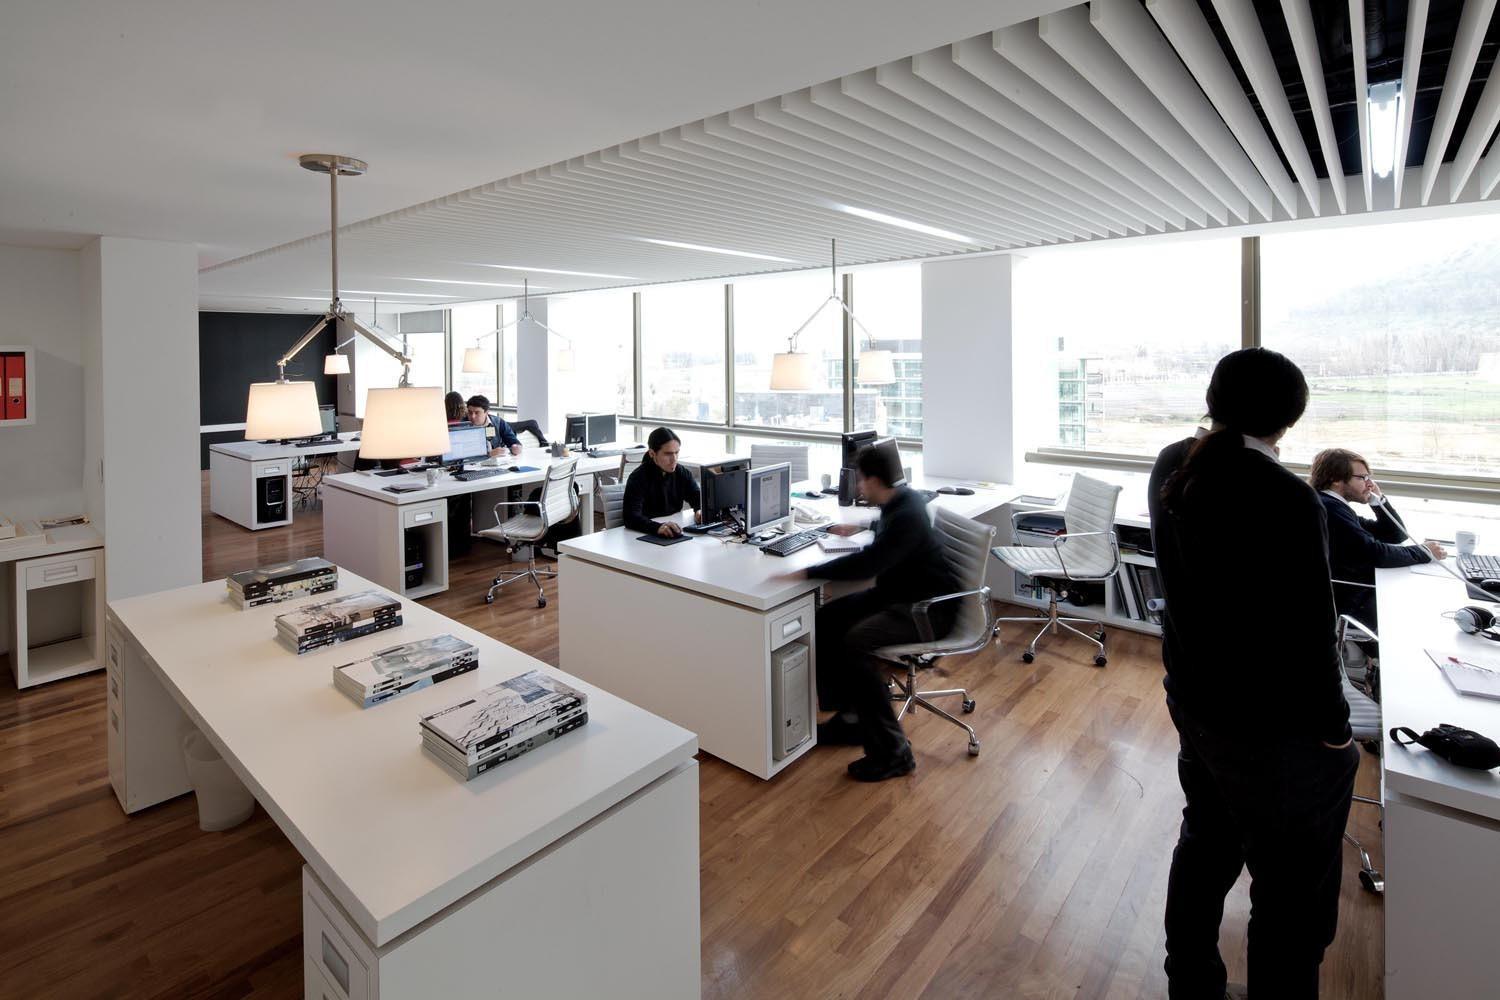 Oficinas kitcorp nicol s lipthay kitcorp plataforma for Arquitectura de oficinas